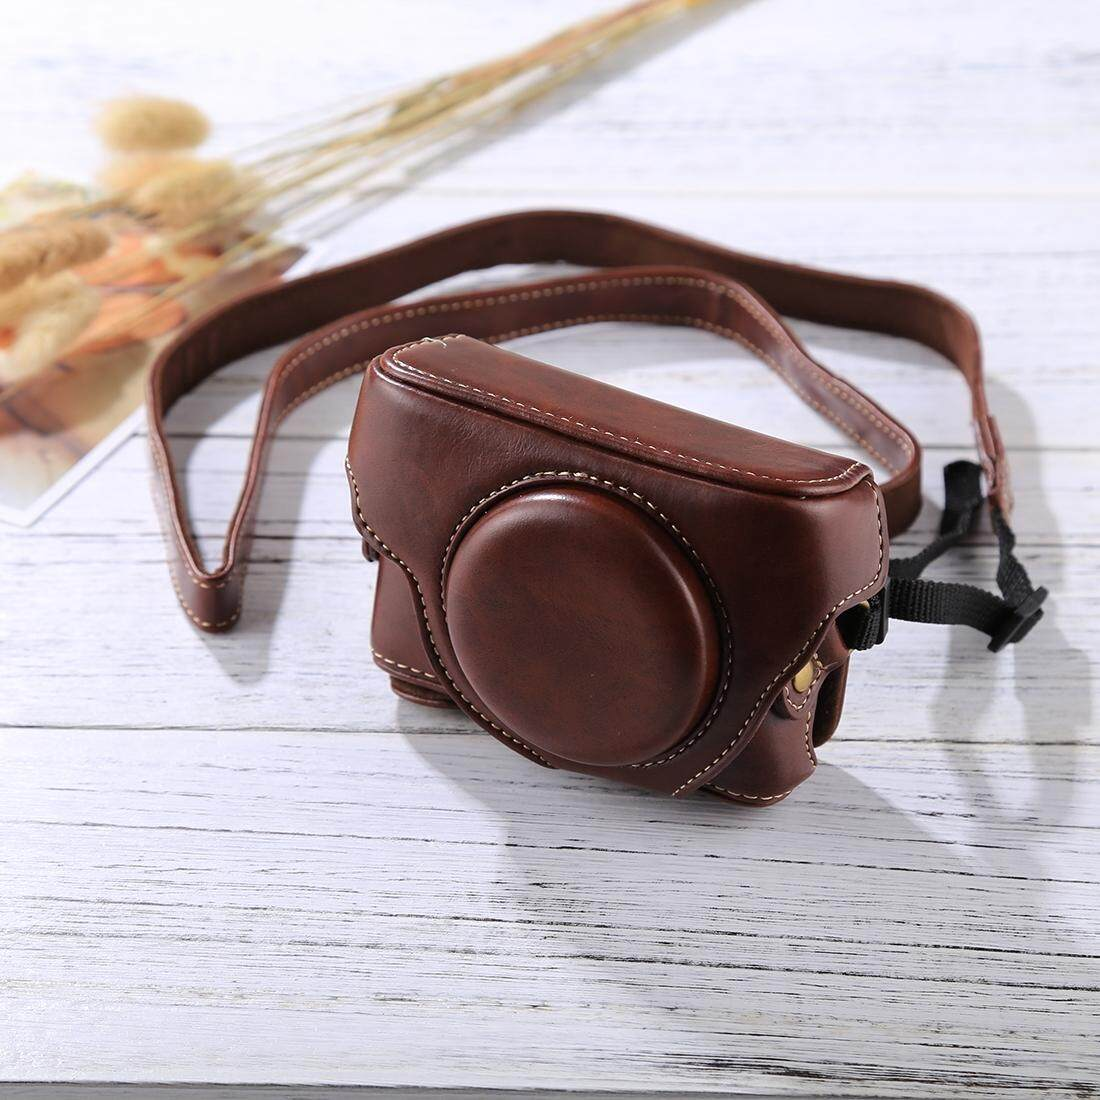 Get The Best Price For Retro Style Leather Camera Case Bag With Strap For Sony Rx100 M3 M4 M5 Coffee Intl